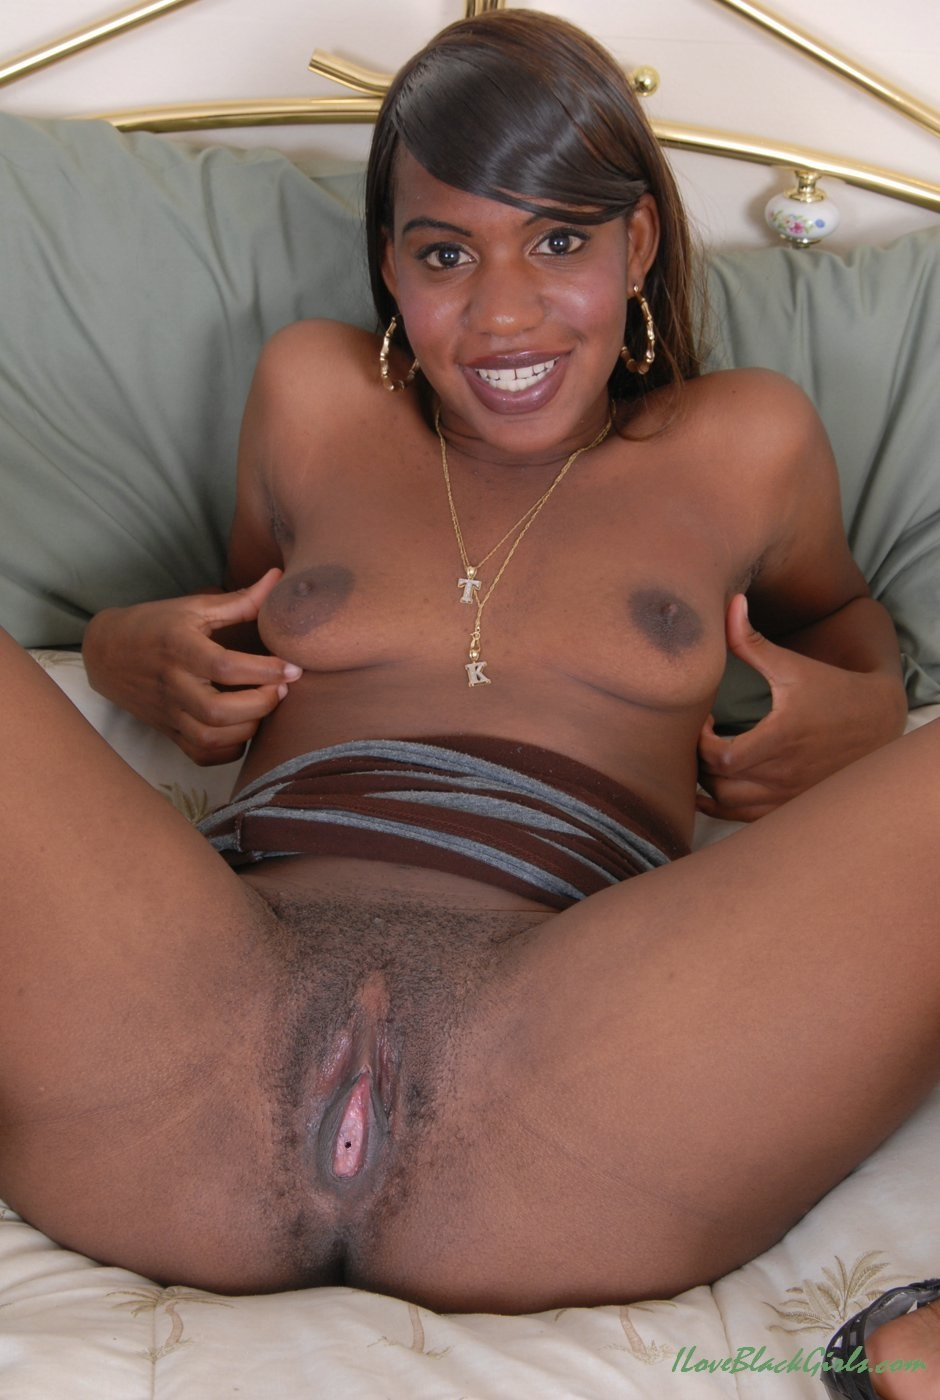 Black man white woman interracial sex